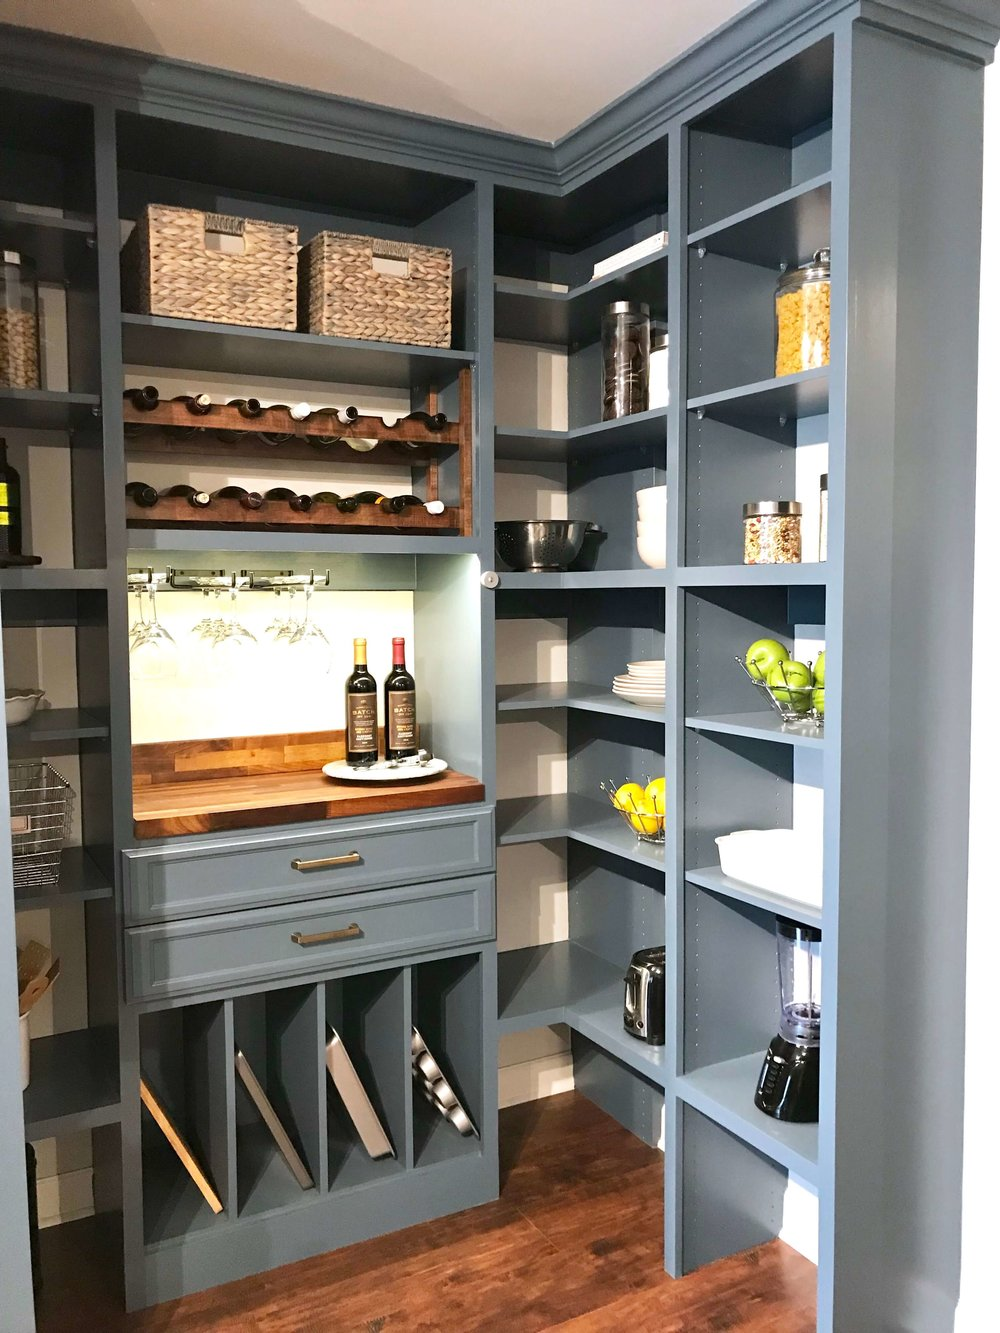 We staged this custom pantry for the showroom of a local custom closet company in Nashville.